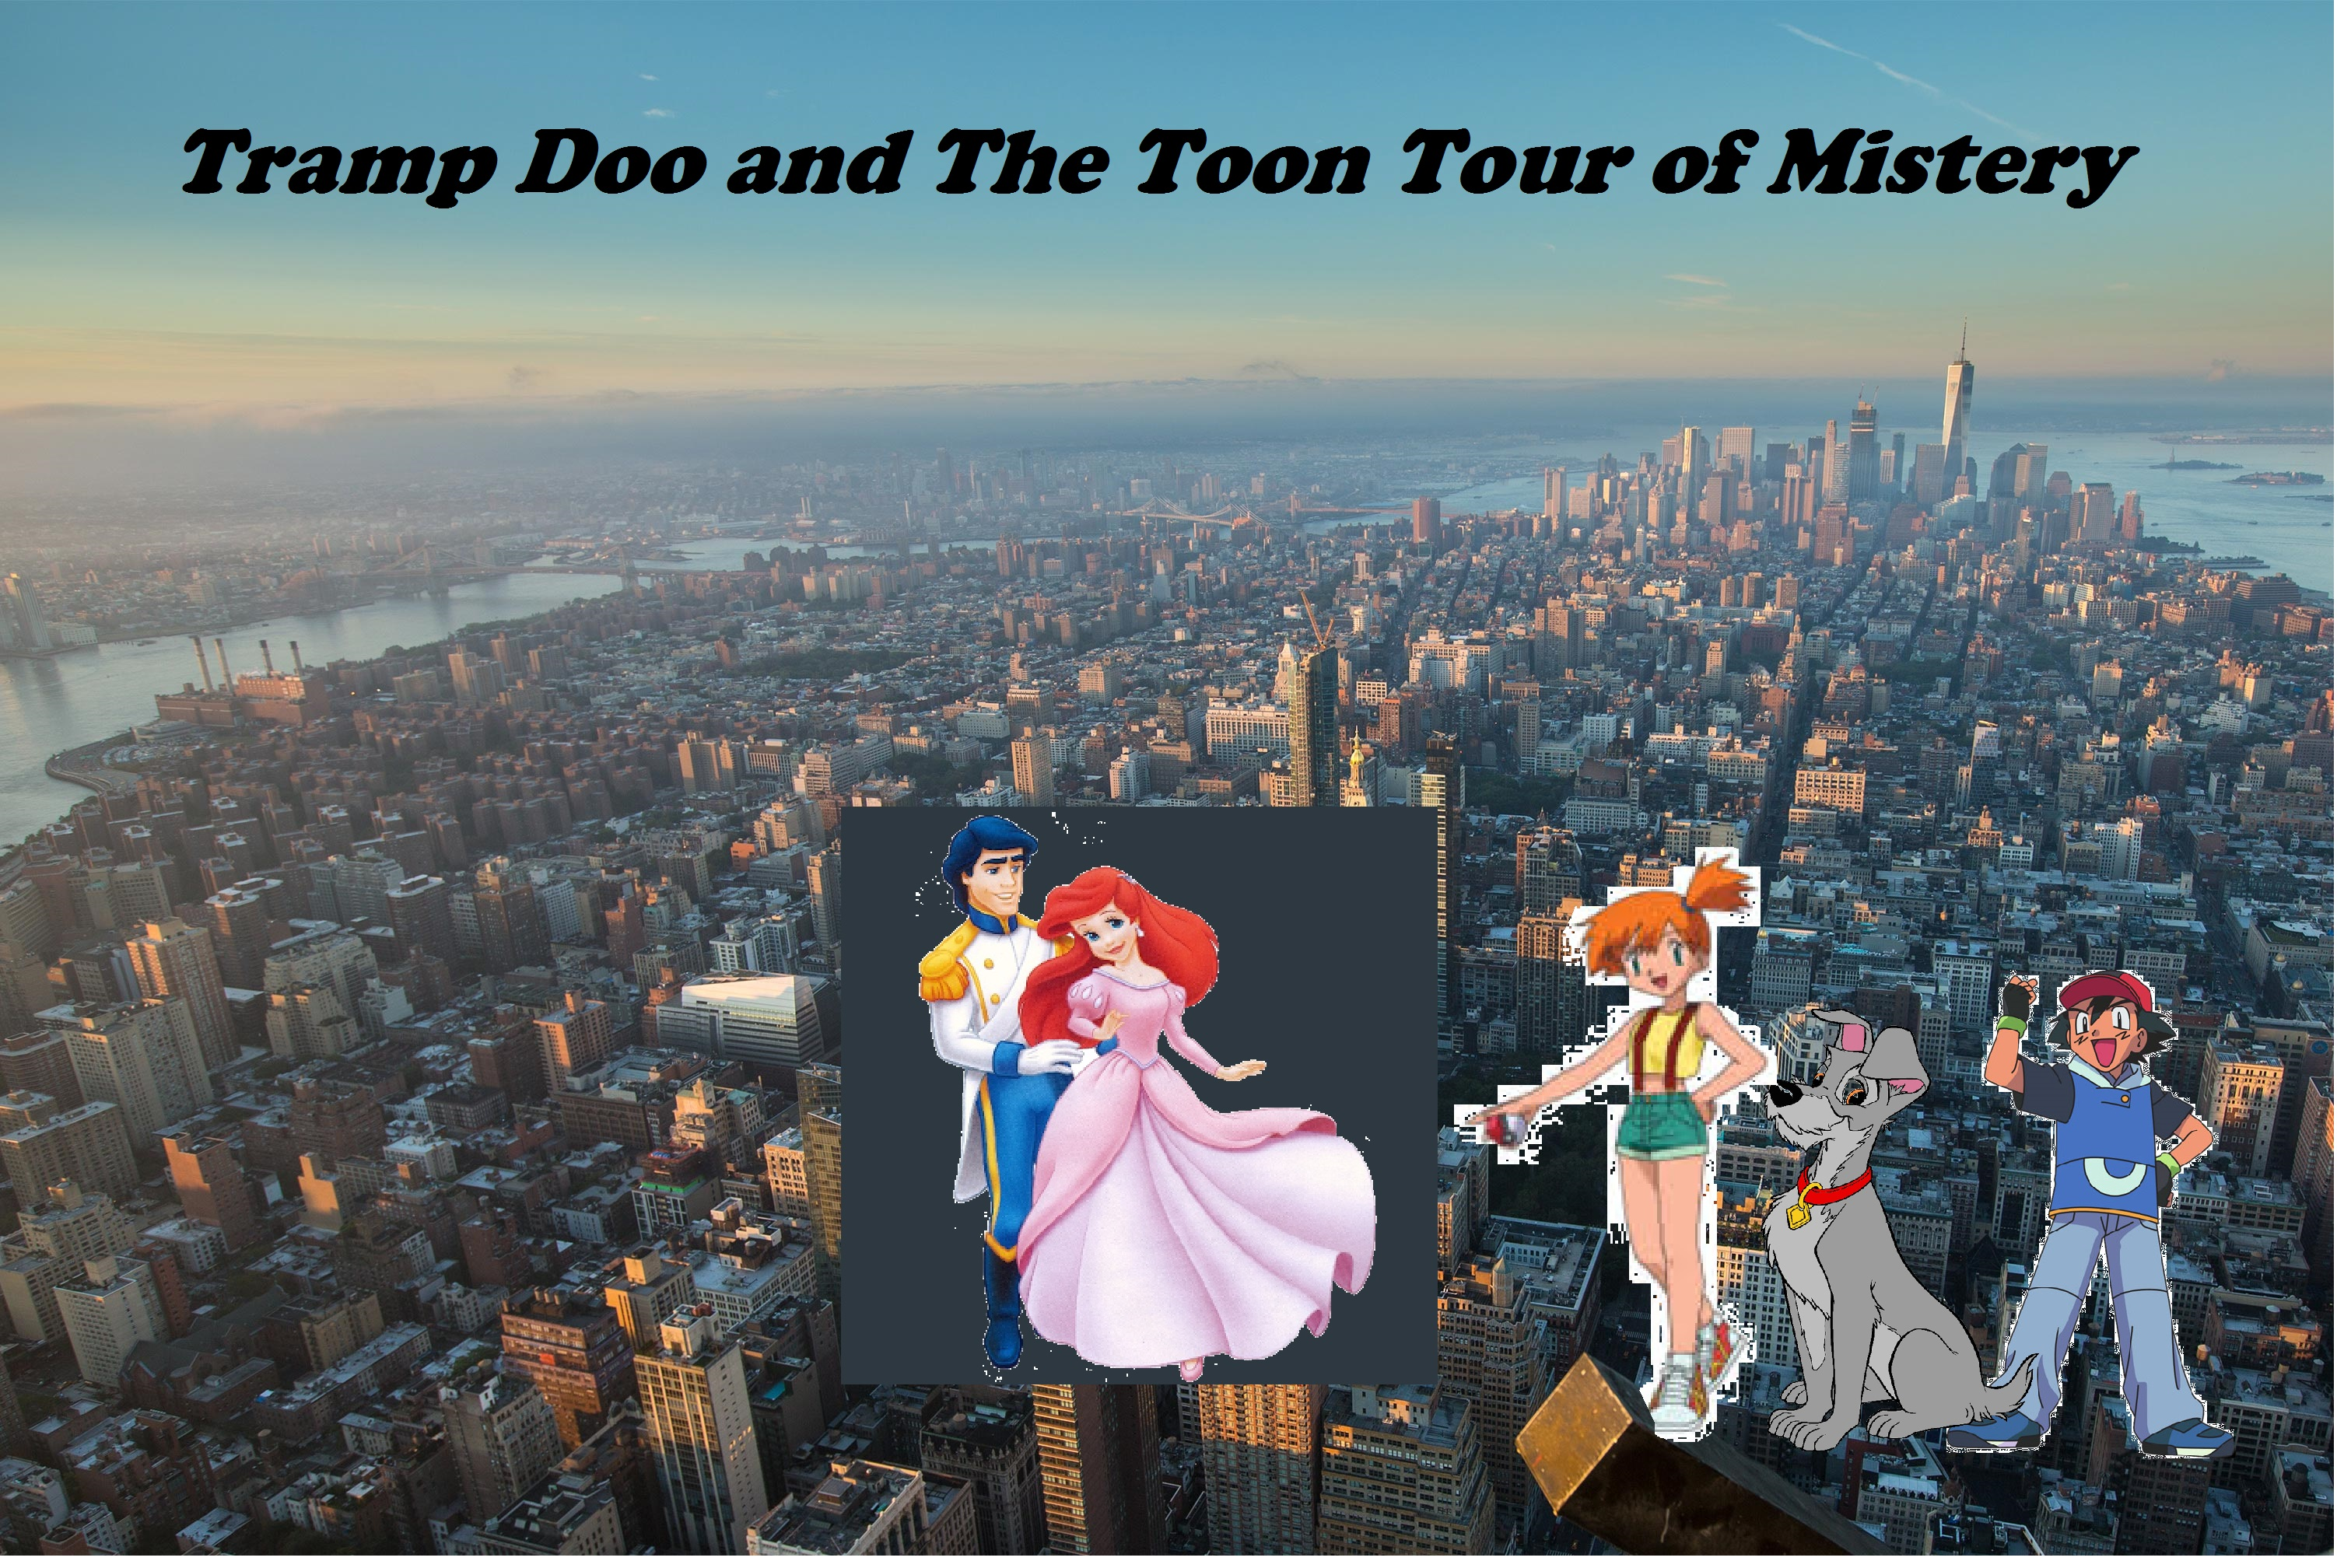 Tramp Doo and the Toon Tour of Mysteries